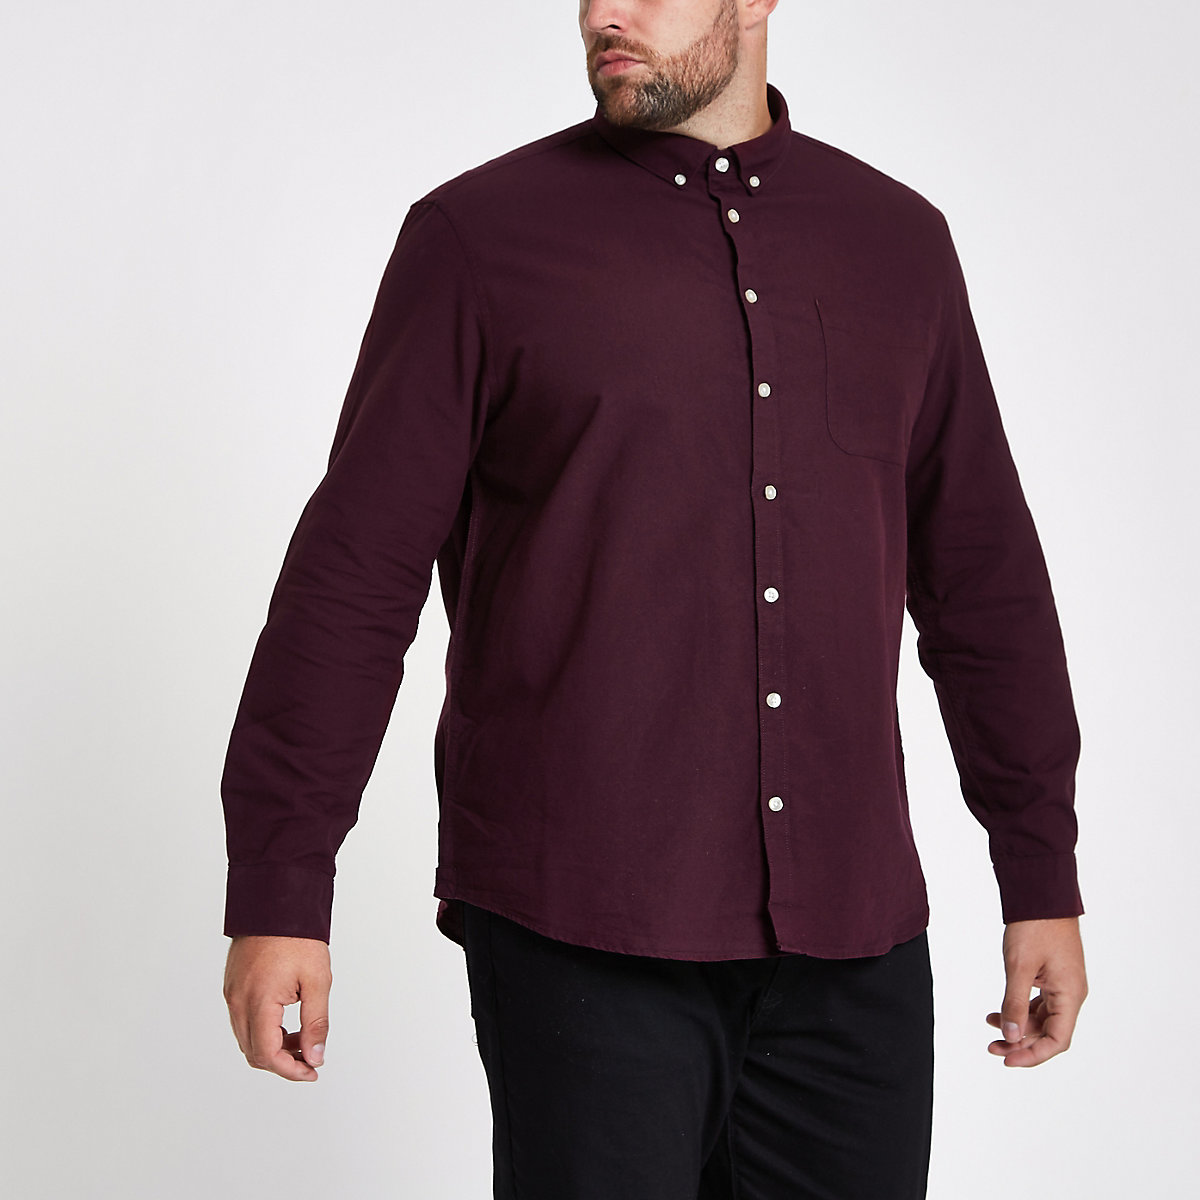 Big and Tall burgundy long sleeve shirt